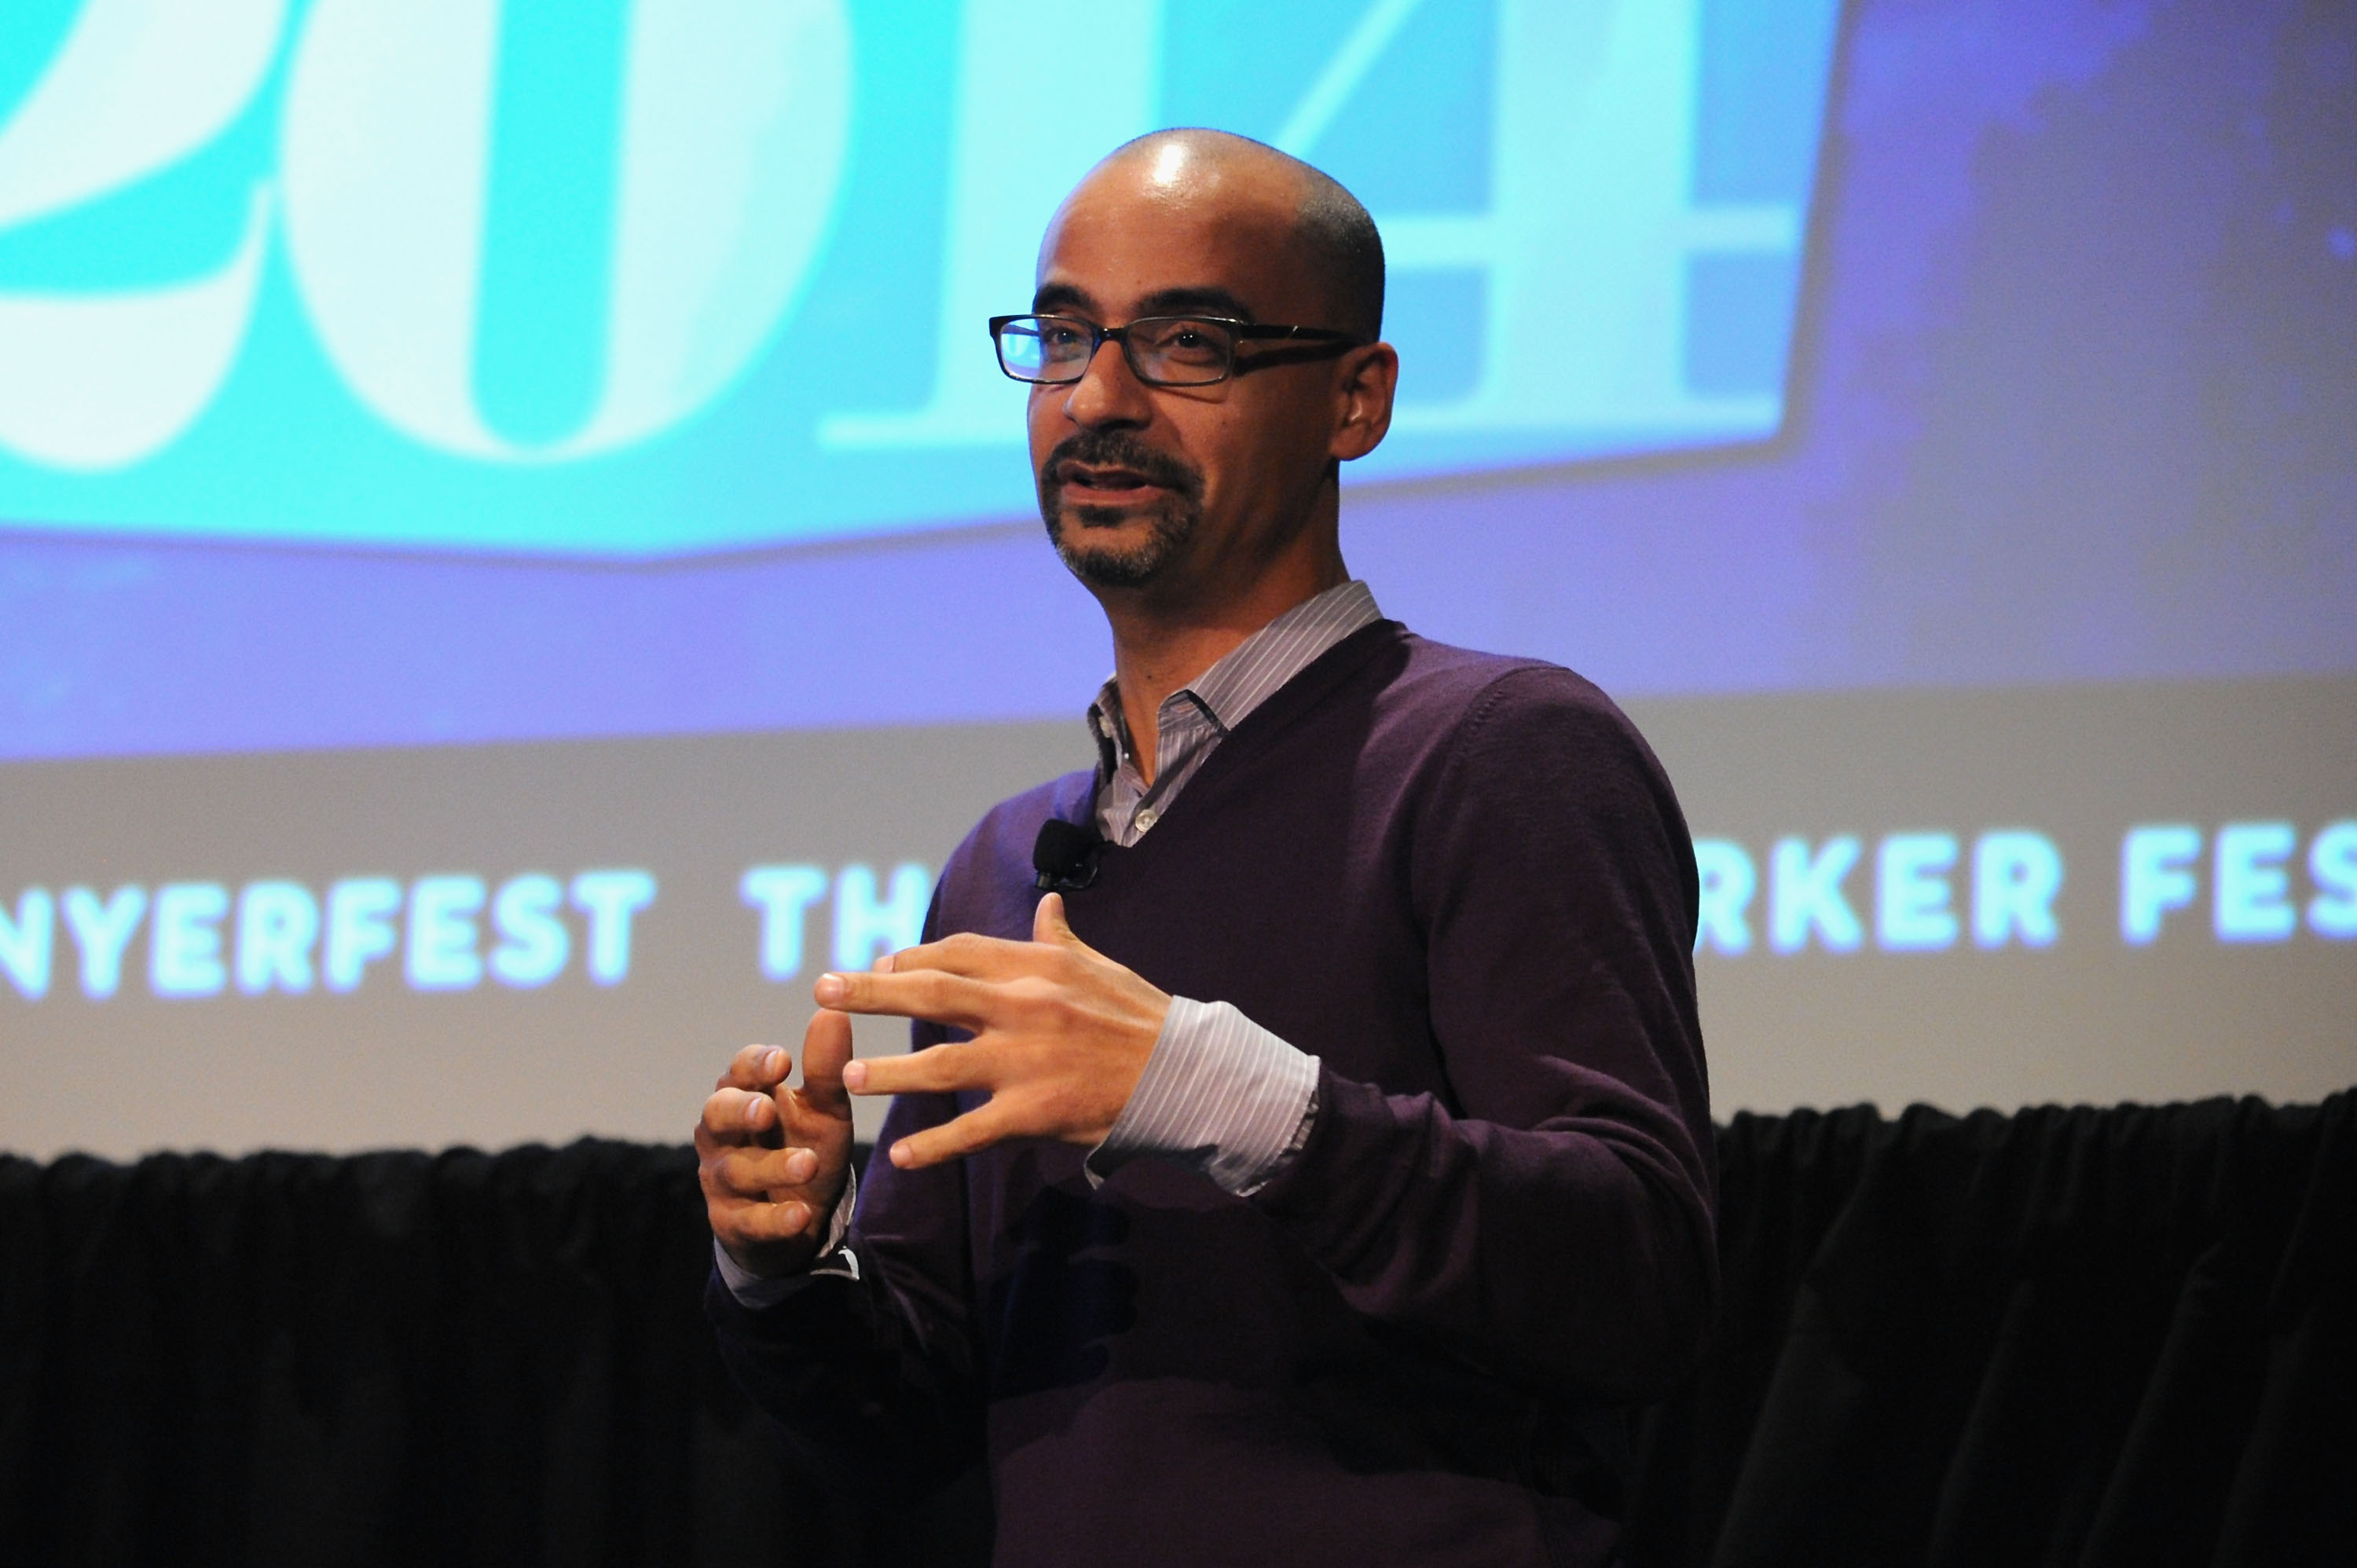 Following Sexual Misconduct Accusations, Junot Díaz Steps Down as Pulitzer Chairman